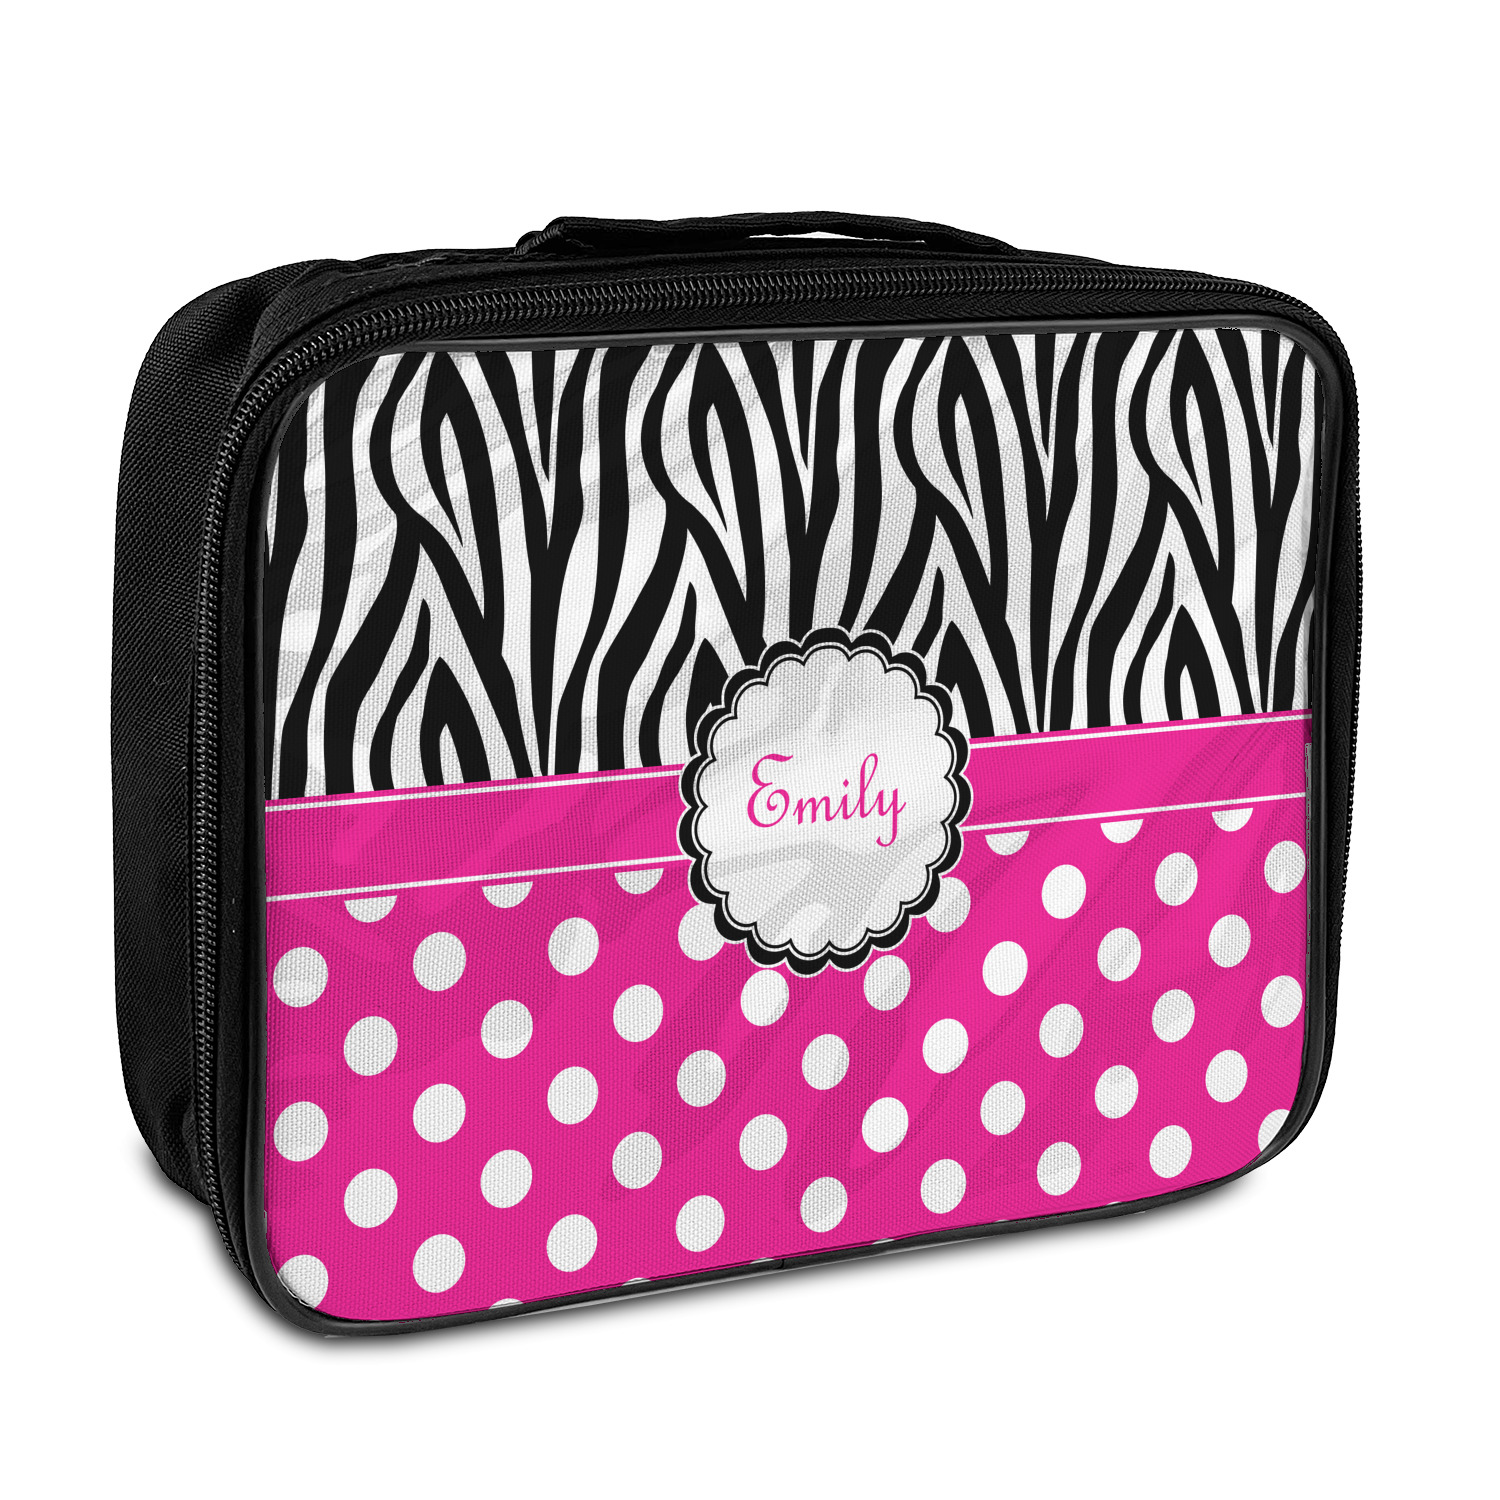 10307fdff Zebra Print & Polka Dots Insulated Lunch Bag (Personalized ...